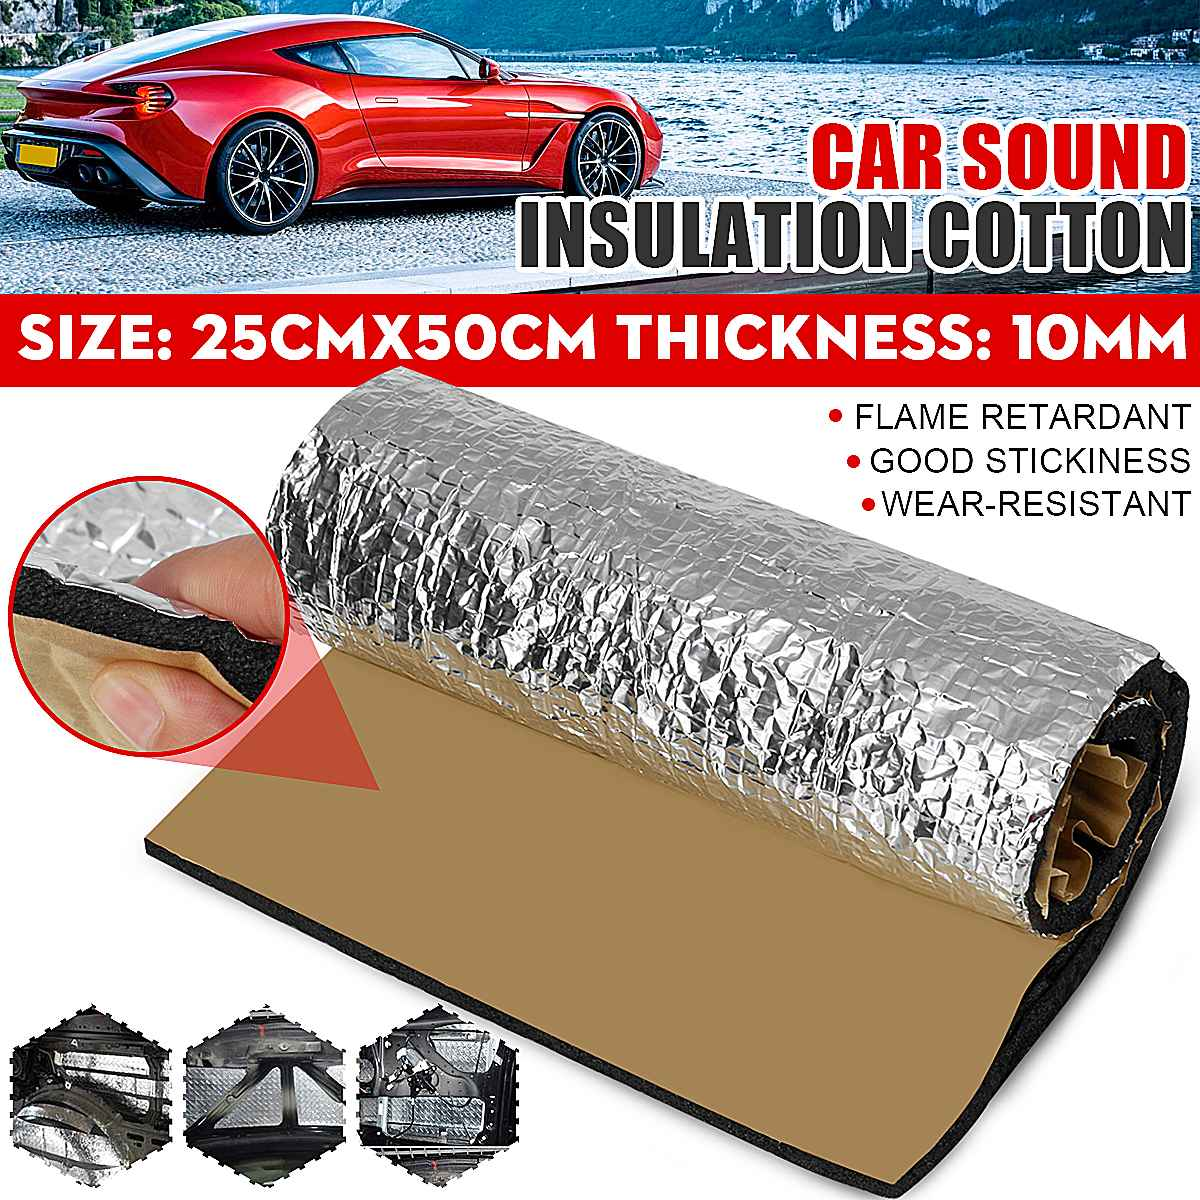 25x50cm Car Sound Deadener Cotton Soundproofing Mat Noise Insulation Shield 10mm Aluminum Foam